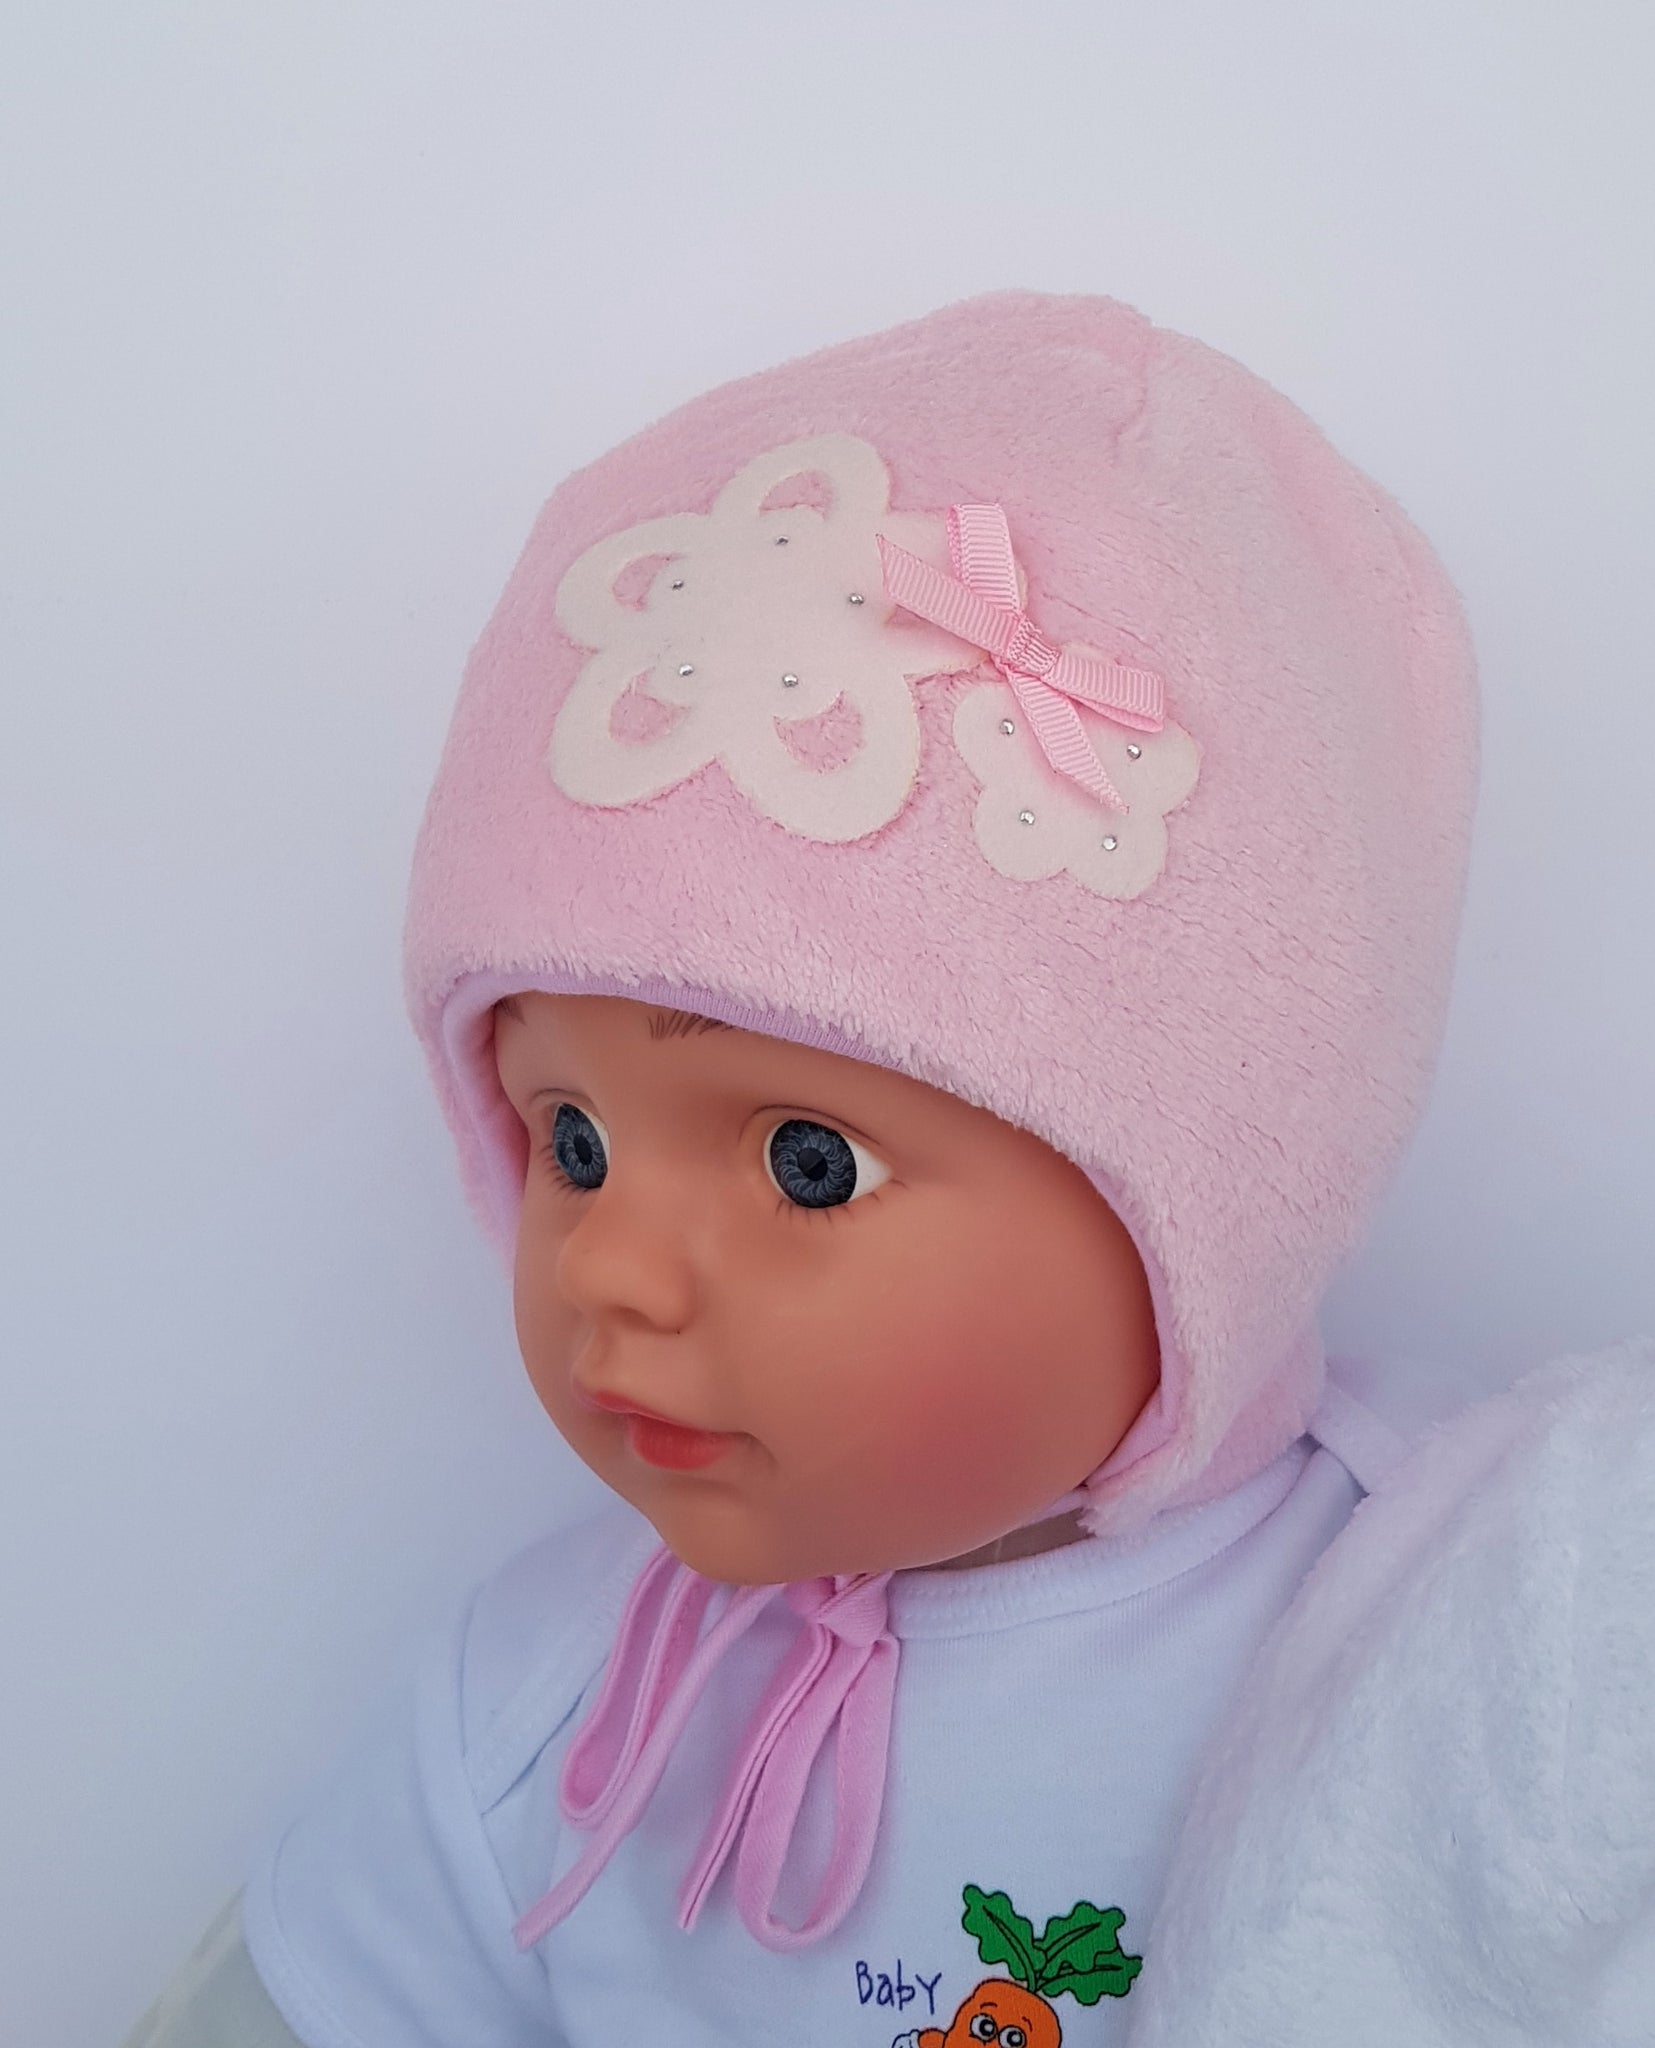 polar warm hat for winter girl warm hat lovinghats wiazane czapki na zime